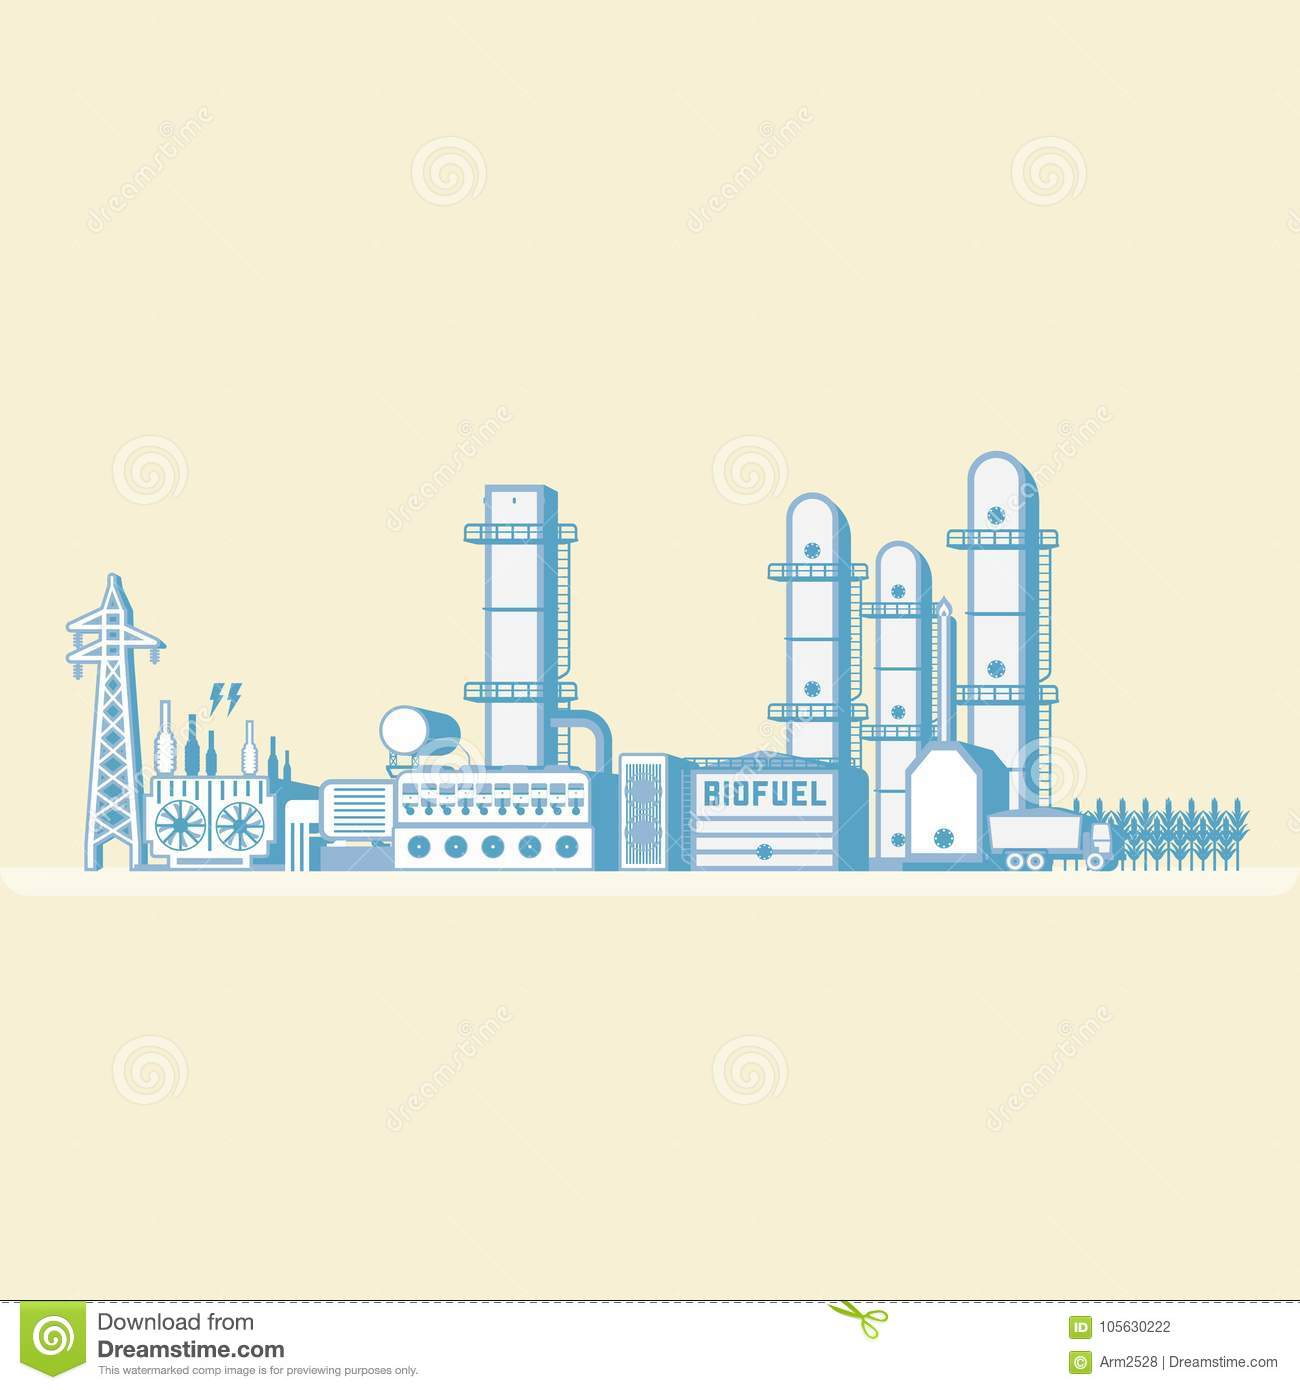 hight resolution of bio fuel energy bio fuel power plant with diesel generator generate the electric in simple graphic